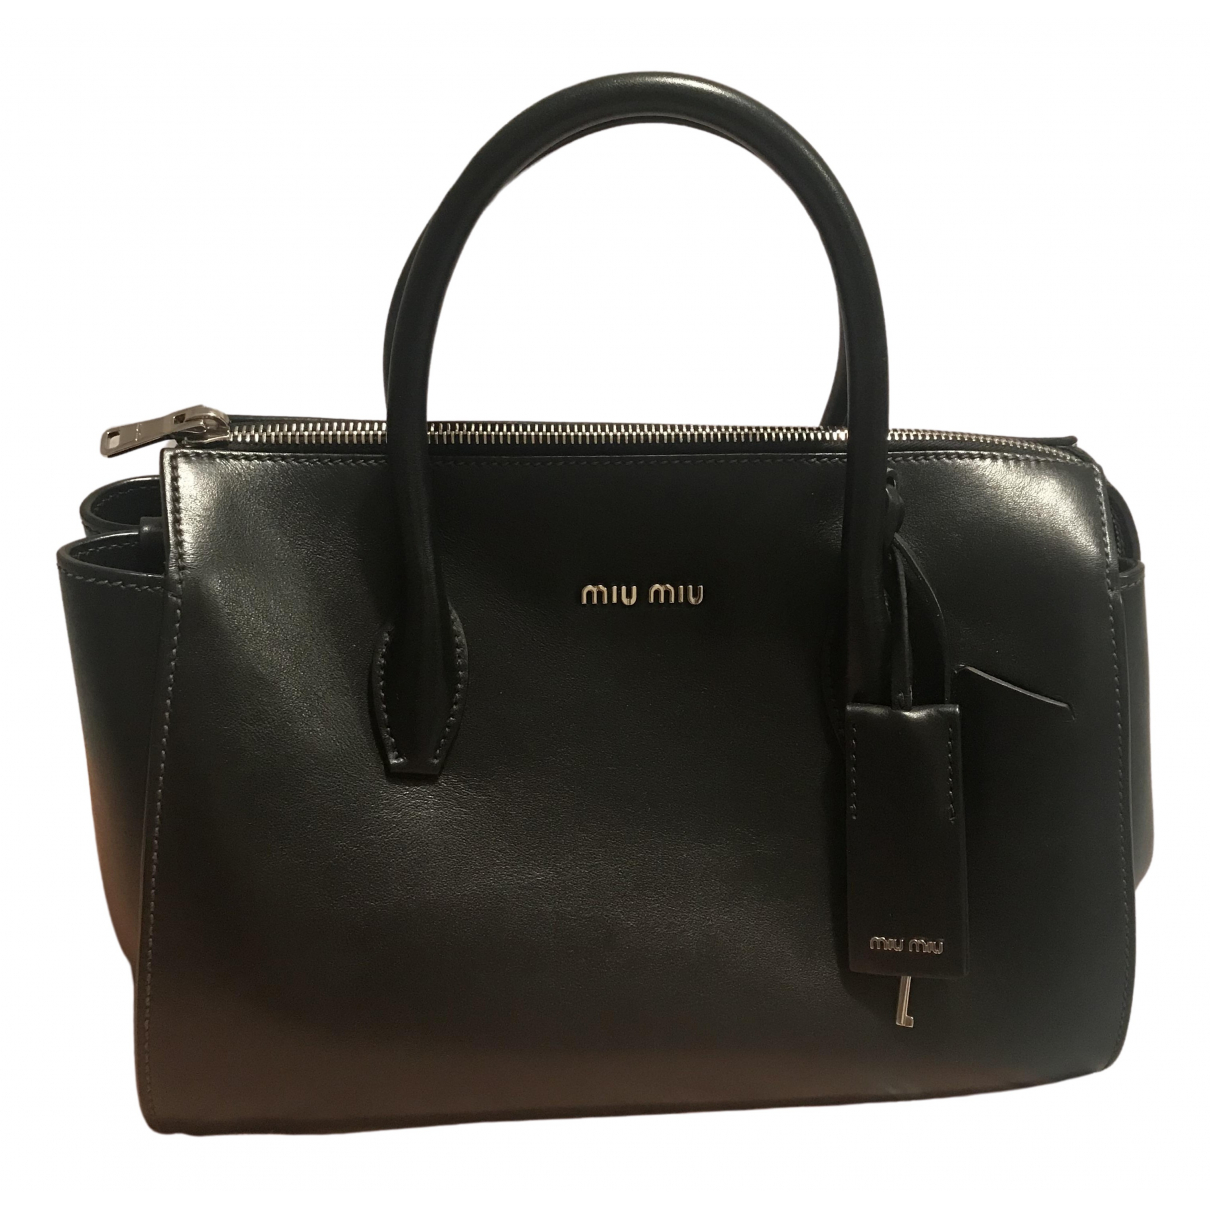 Miu Miu \N Black Leather handbag for Women \N